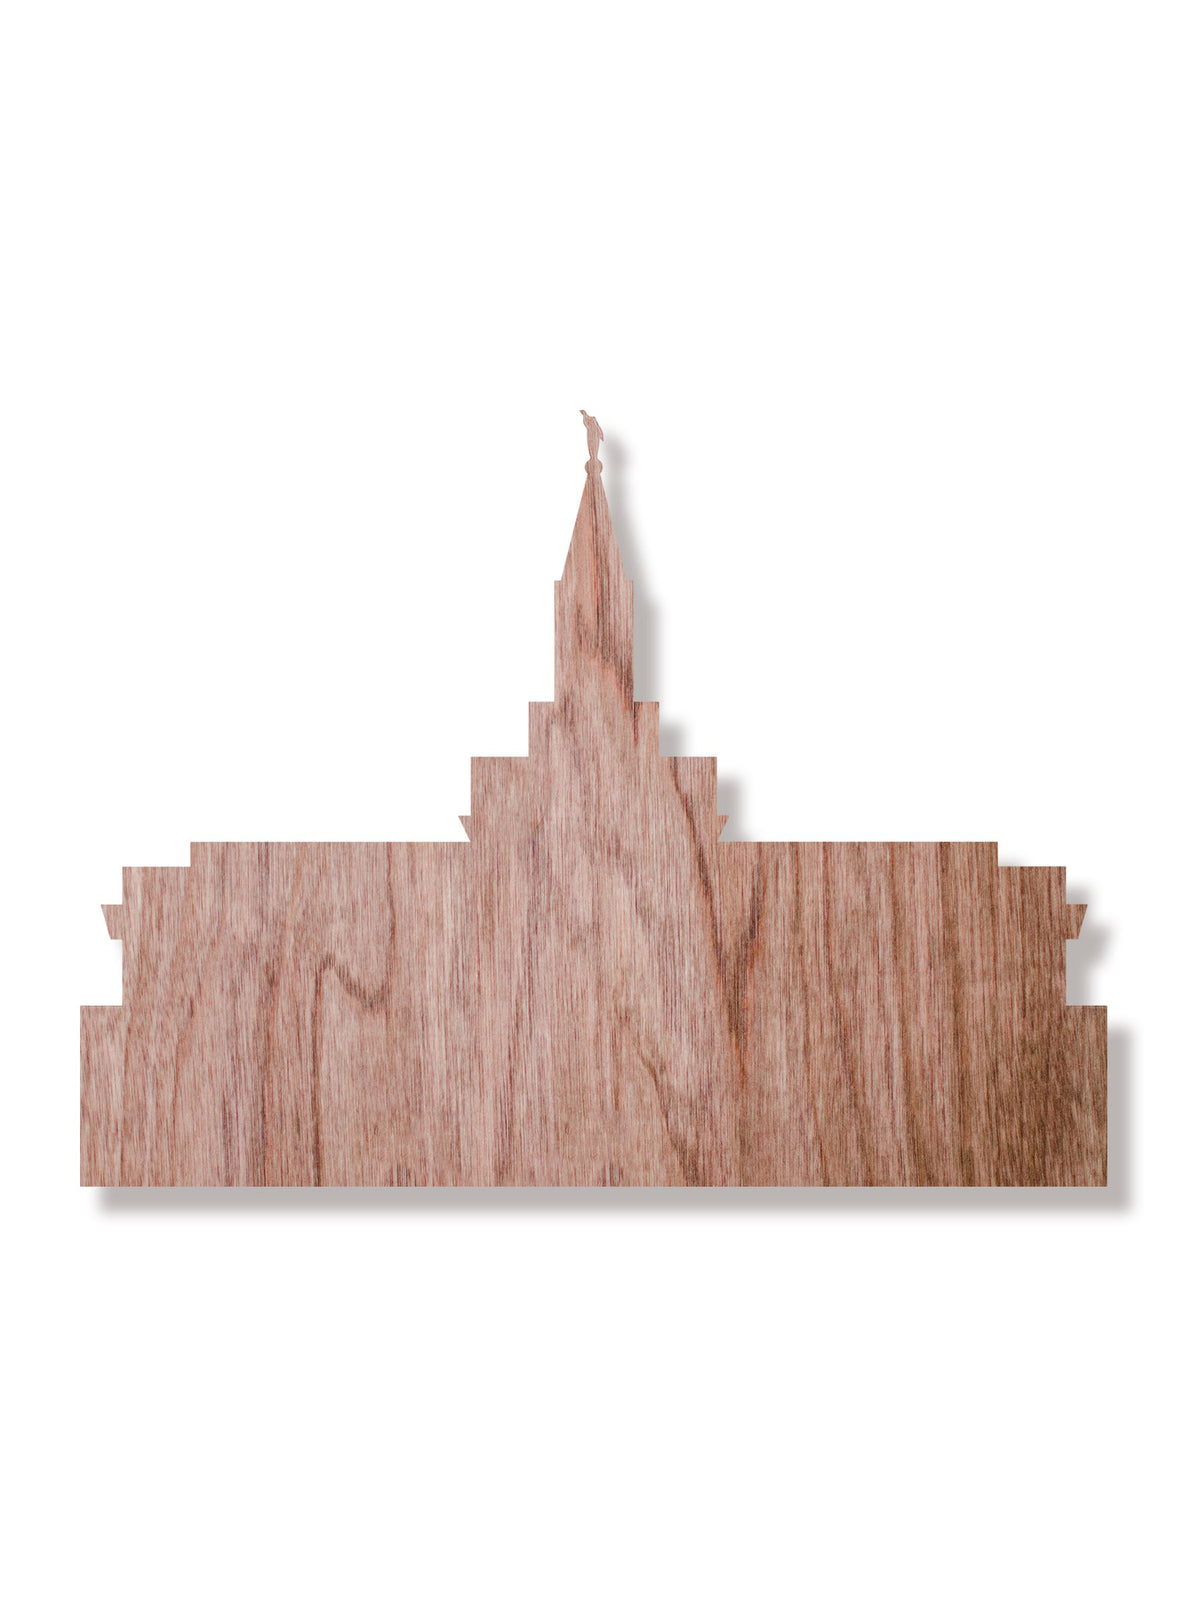 LDS Bountiful Temple Wooden Decor Walnut